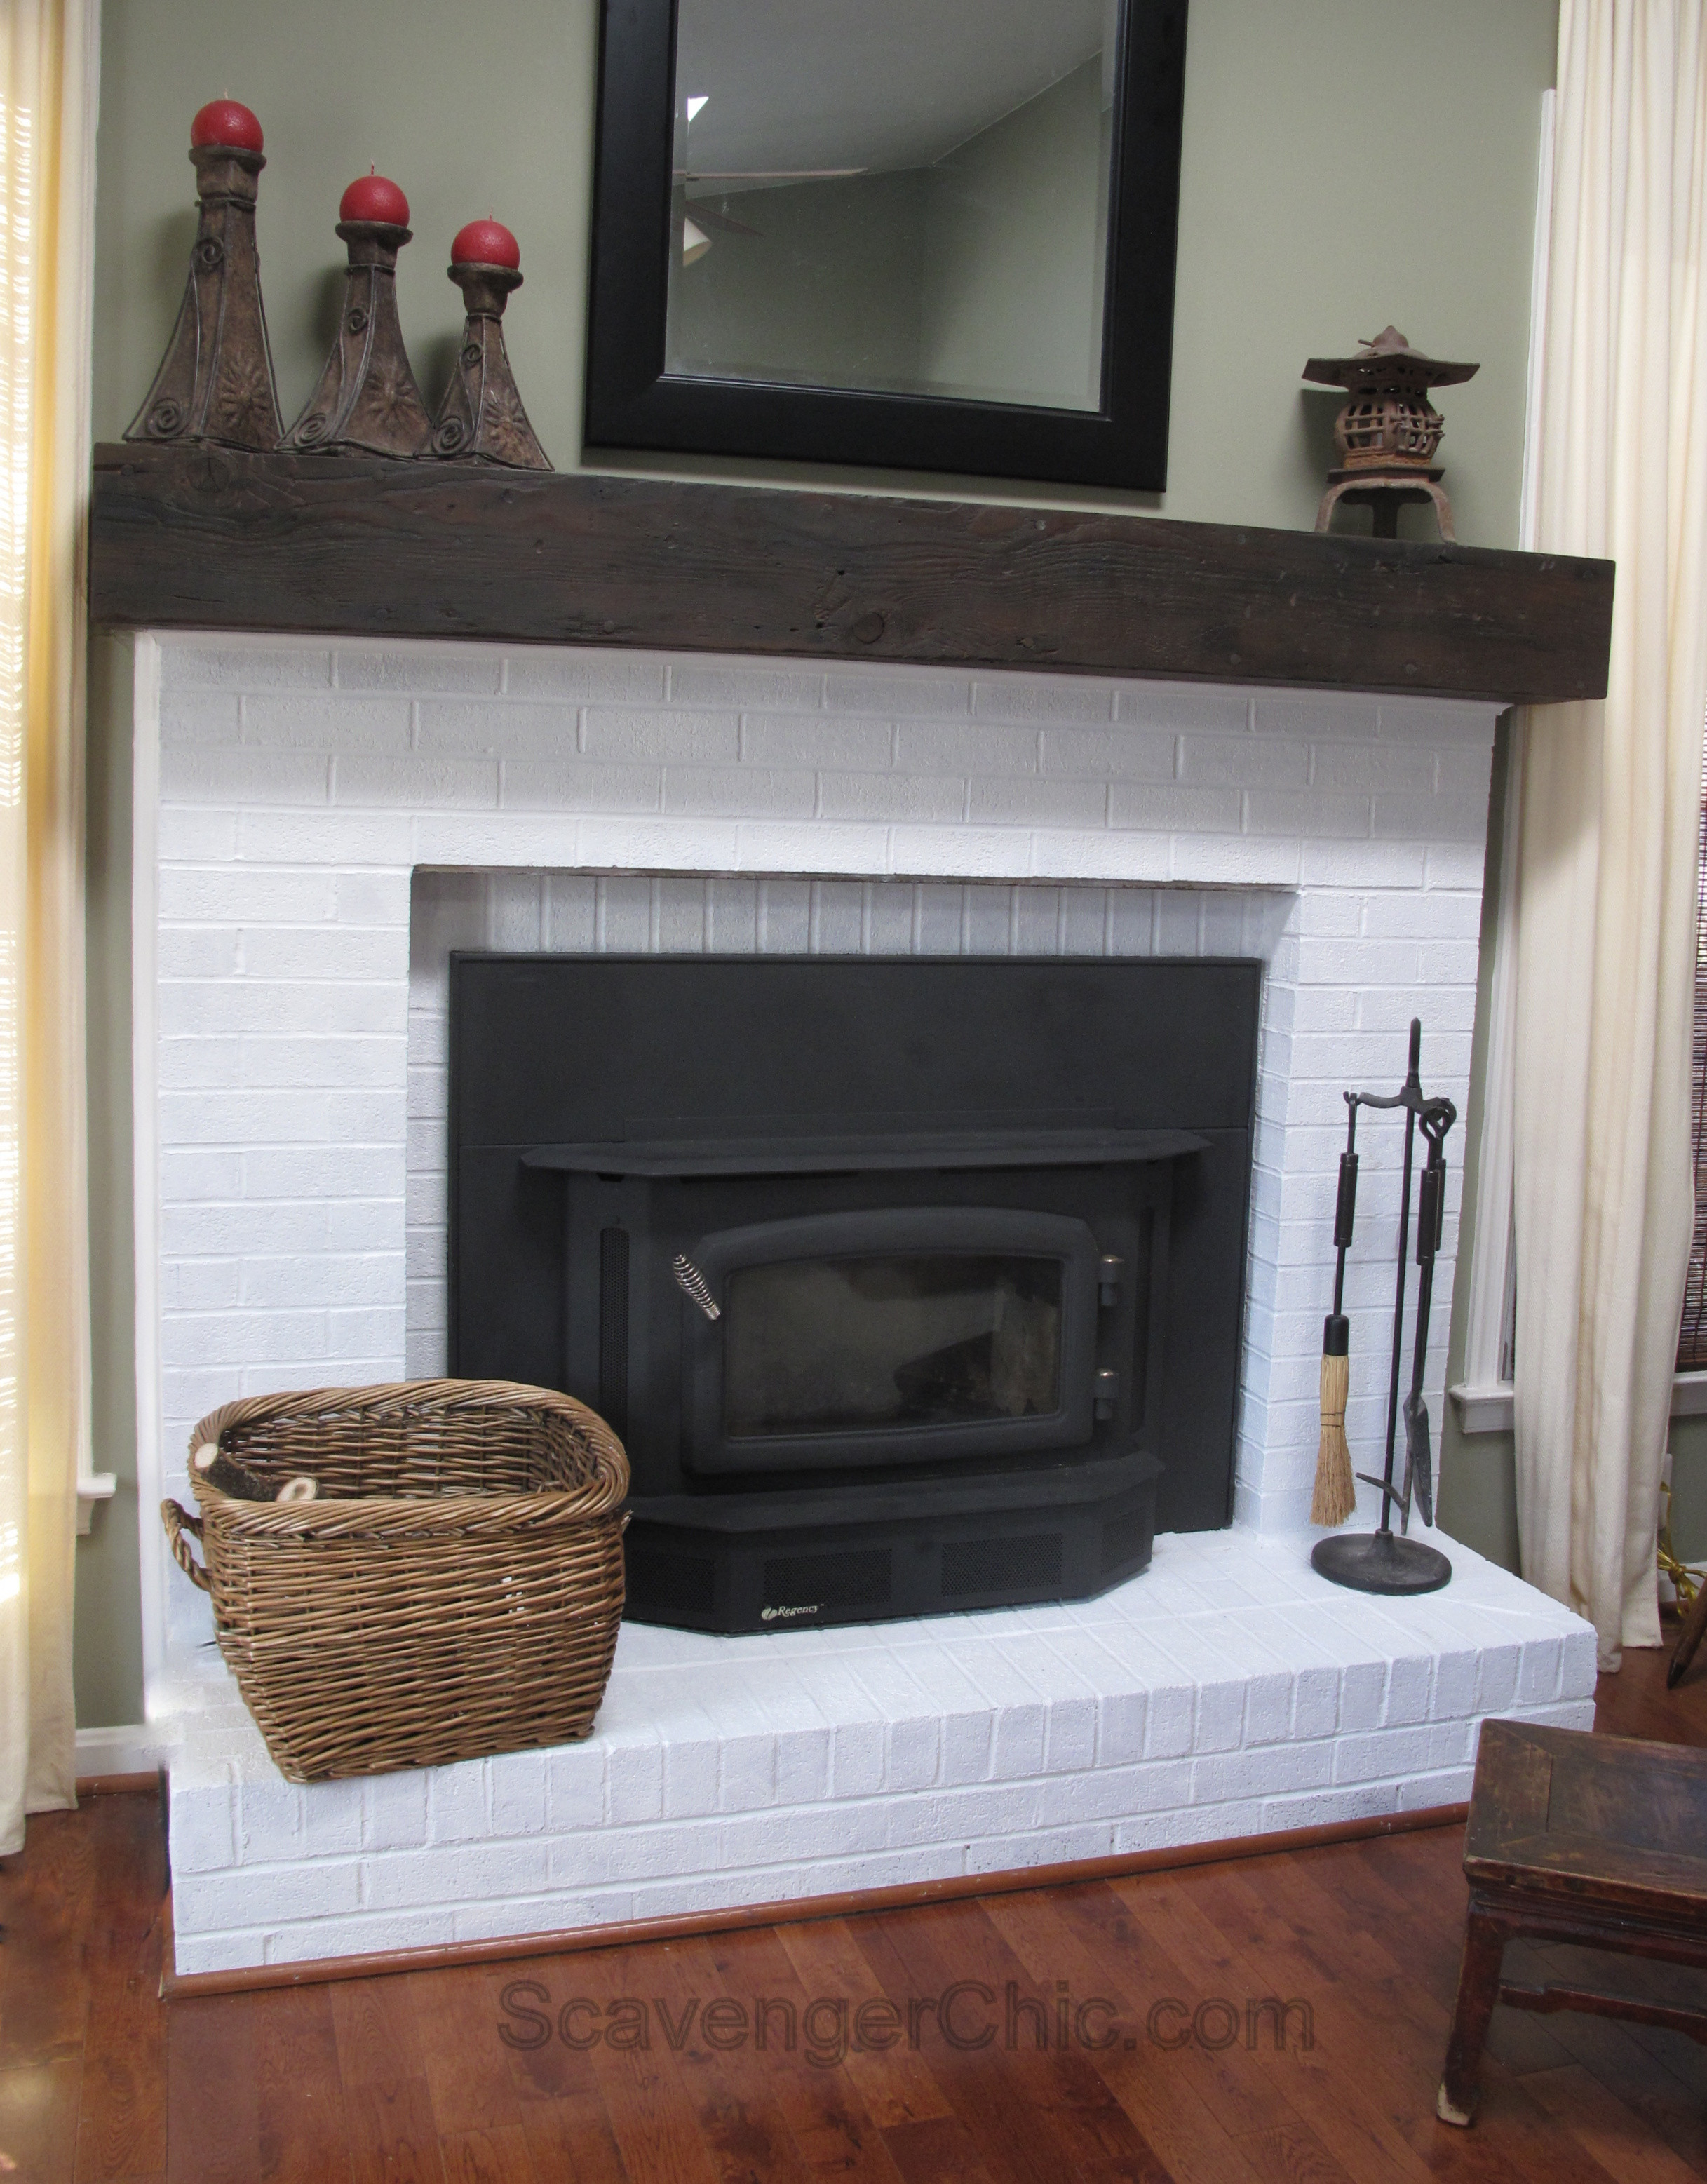 Best ideas about DIY Wood Mantel . Save or Pin Easy Faux Railroad Tie Mantel Scavenger Chic Now.